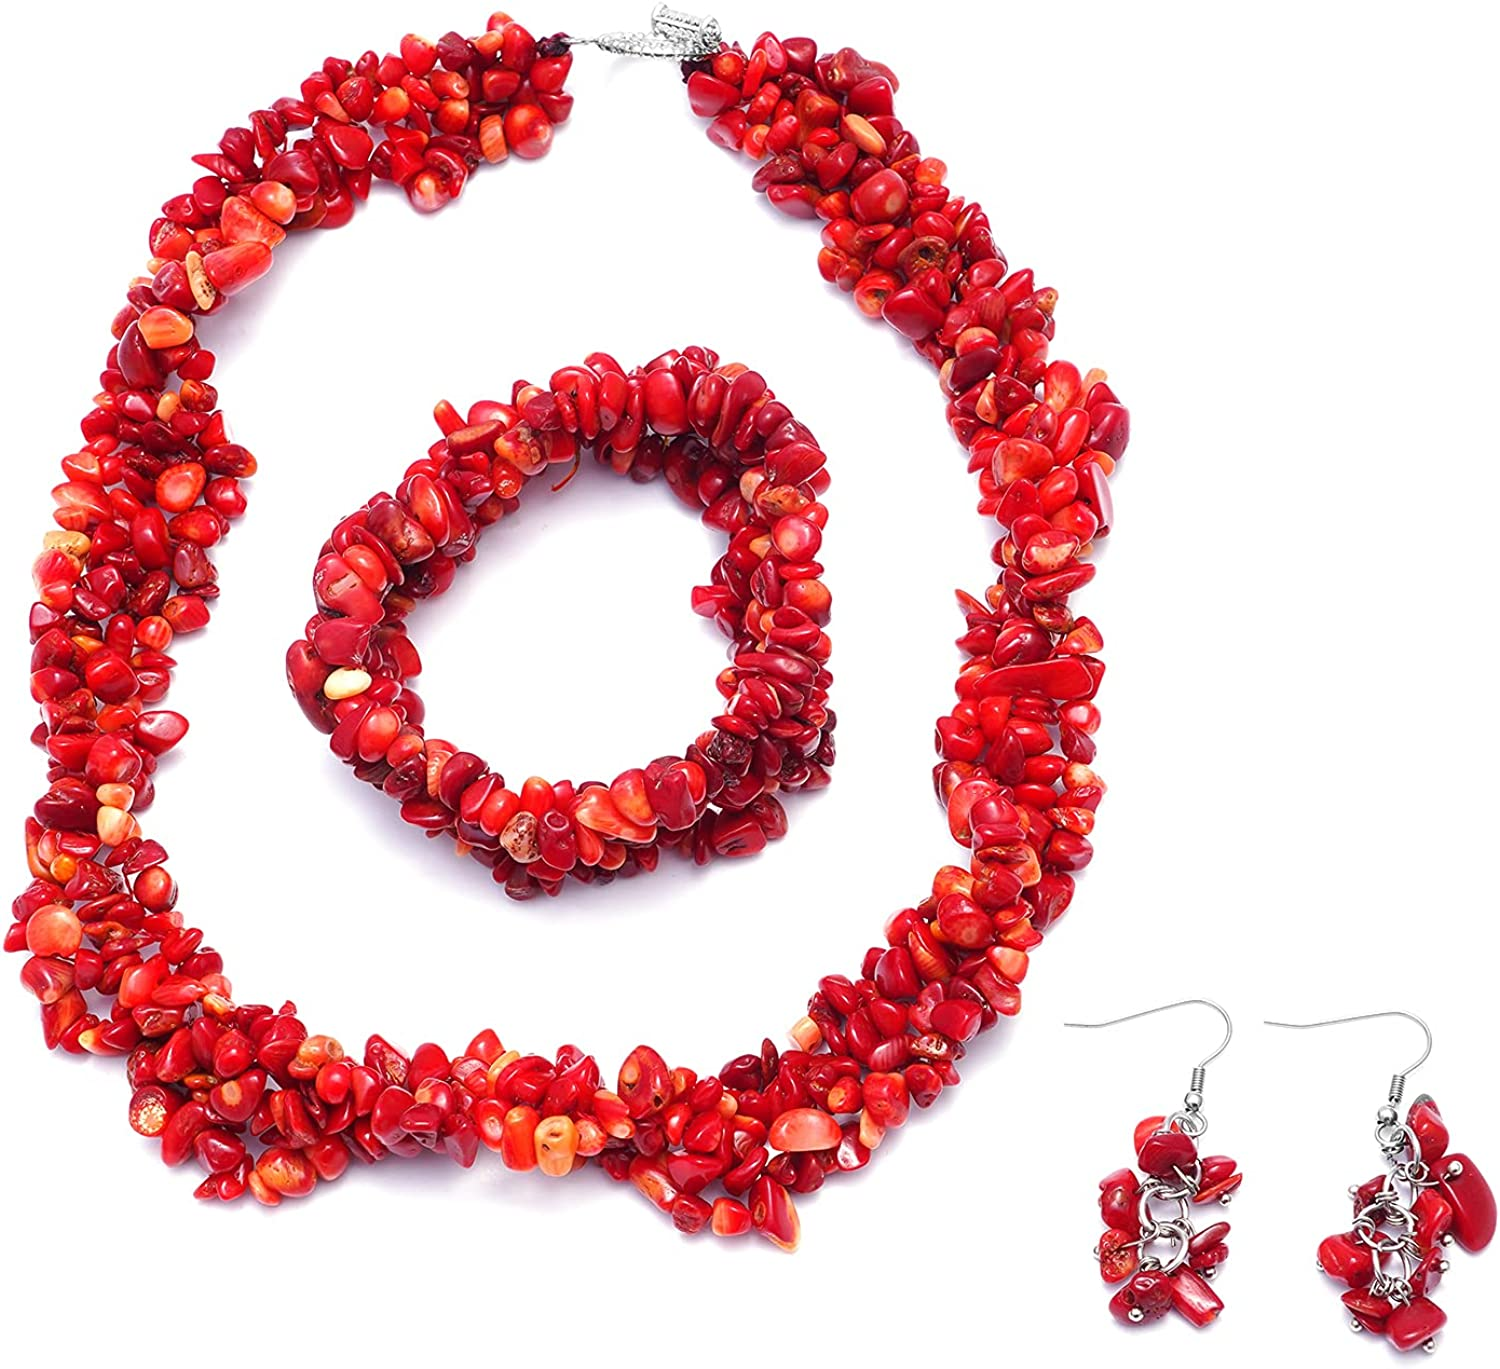 Shop LC Coral Bracelet Earrings Necklace Stainless Steel Fashion Prom Jewelry Sets for Women Size 6.5